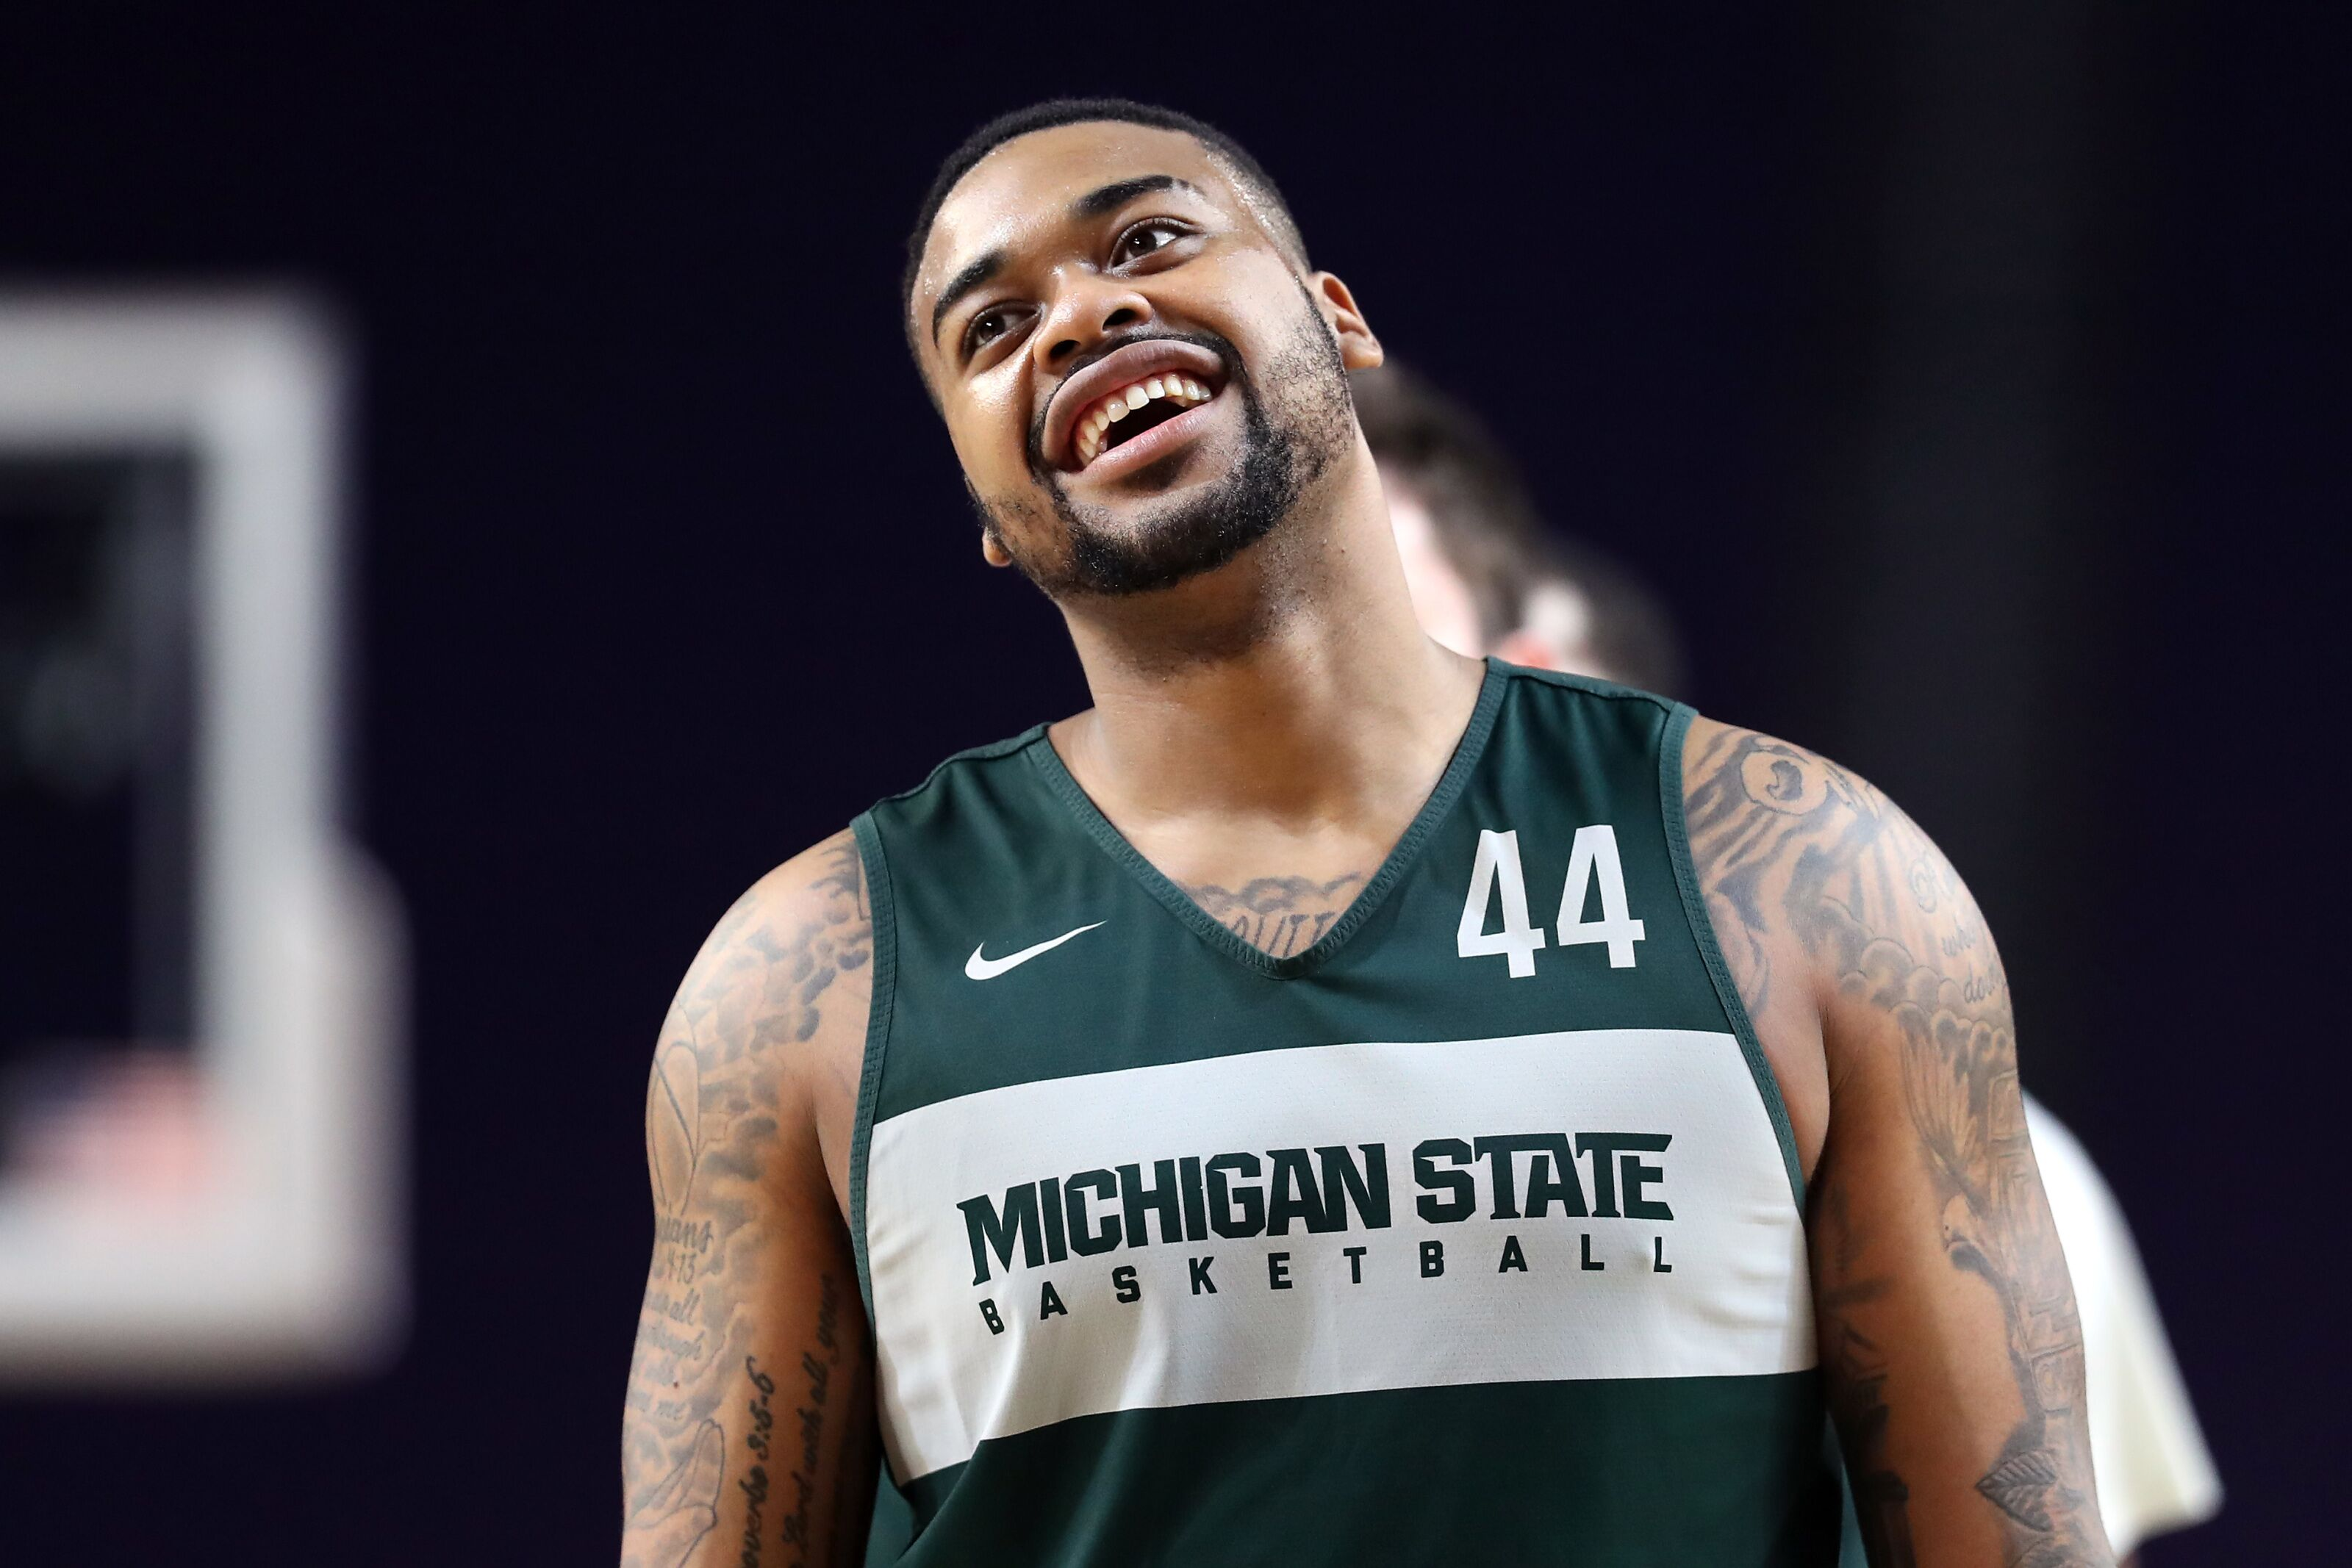 Michigan State Basketball: Nick Ward working out for Detroit Pistons